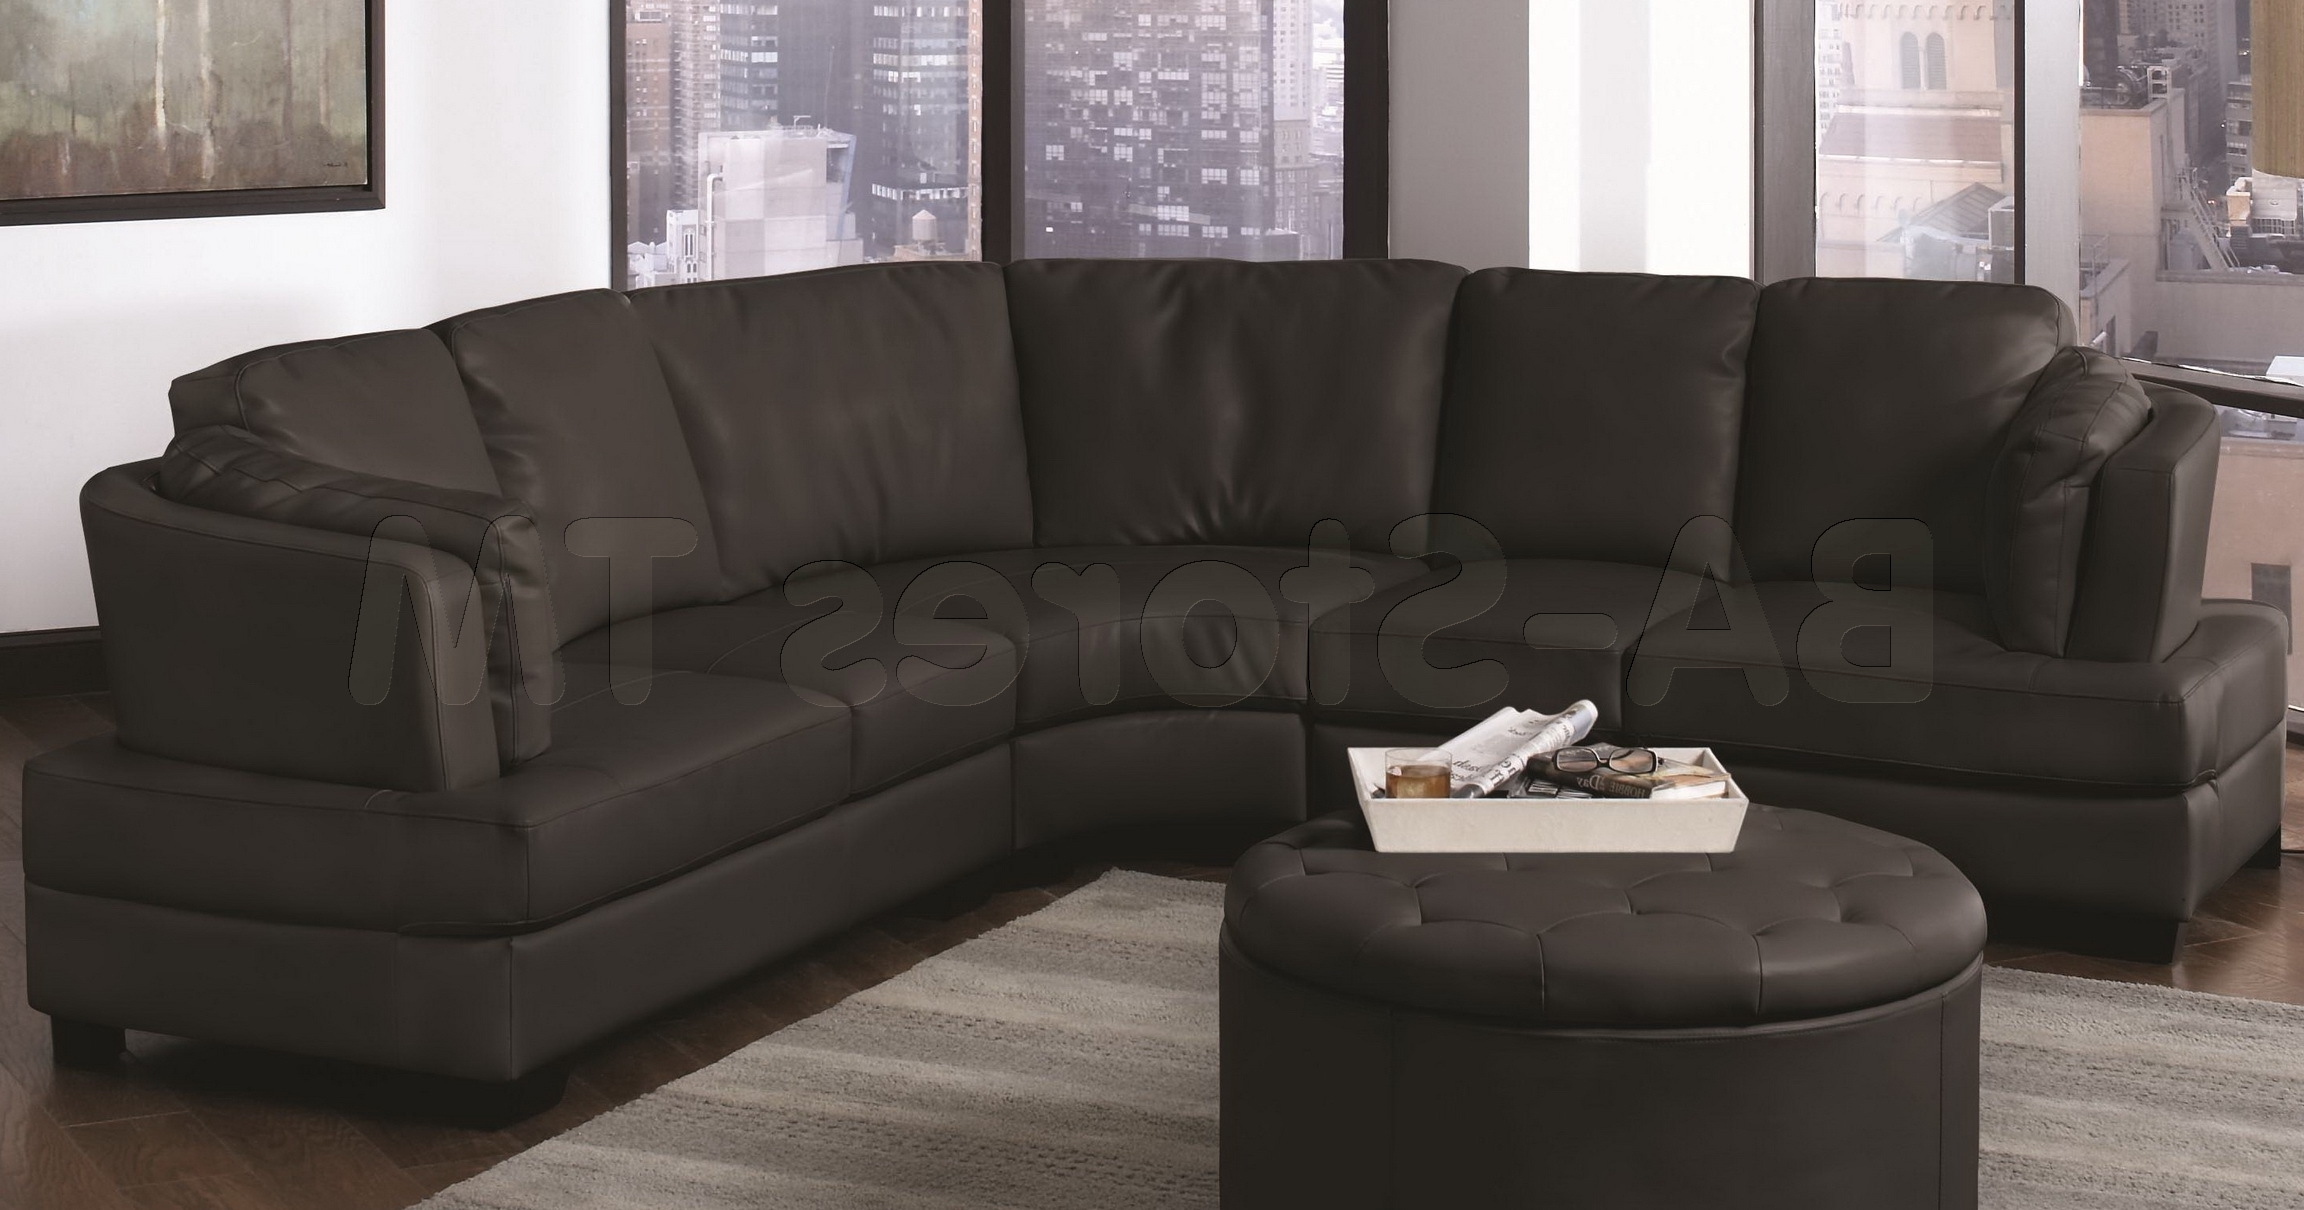 Most Current Amazing Round Sectional Sofa 63 With Additional Modern Sofa Ideas In Round Sectional Sofas (View 6 of 15)